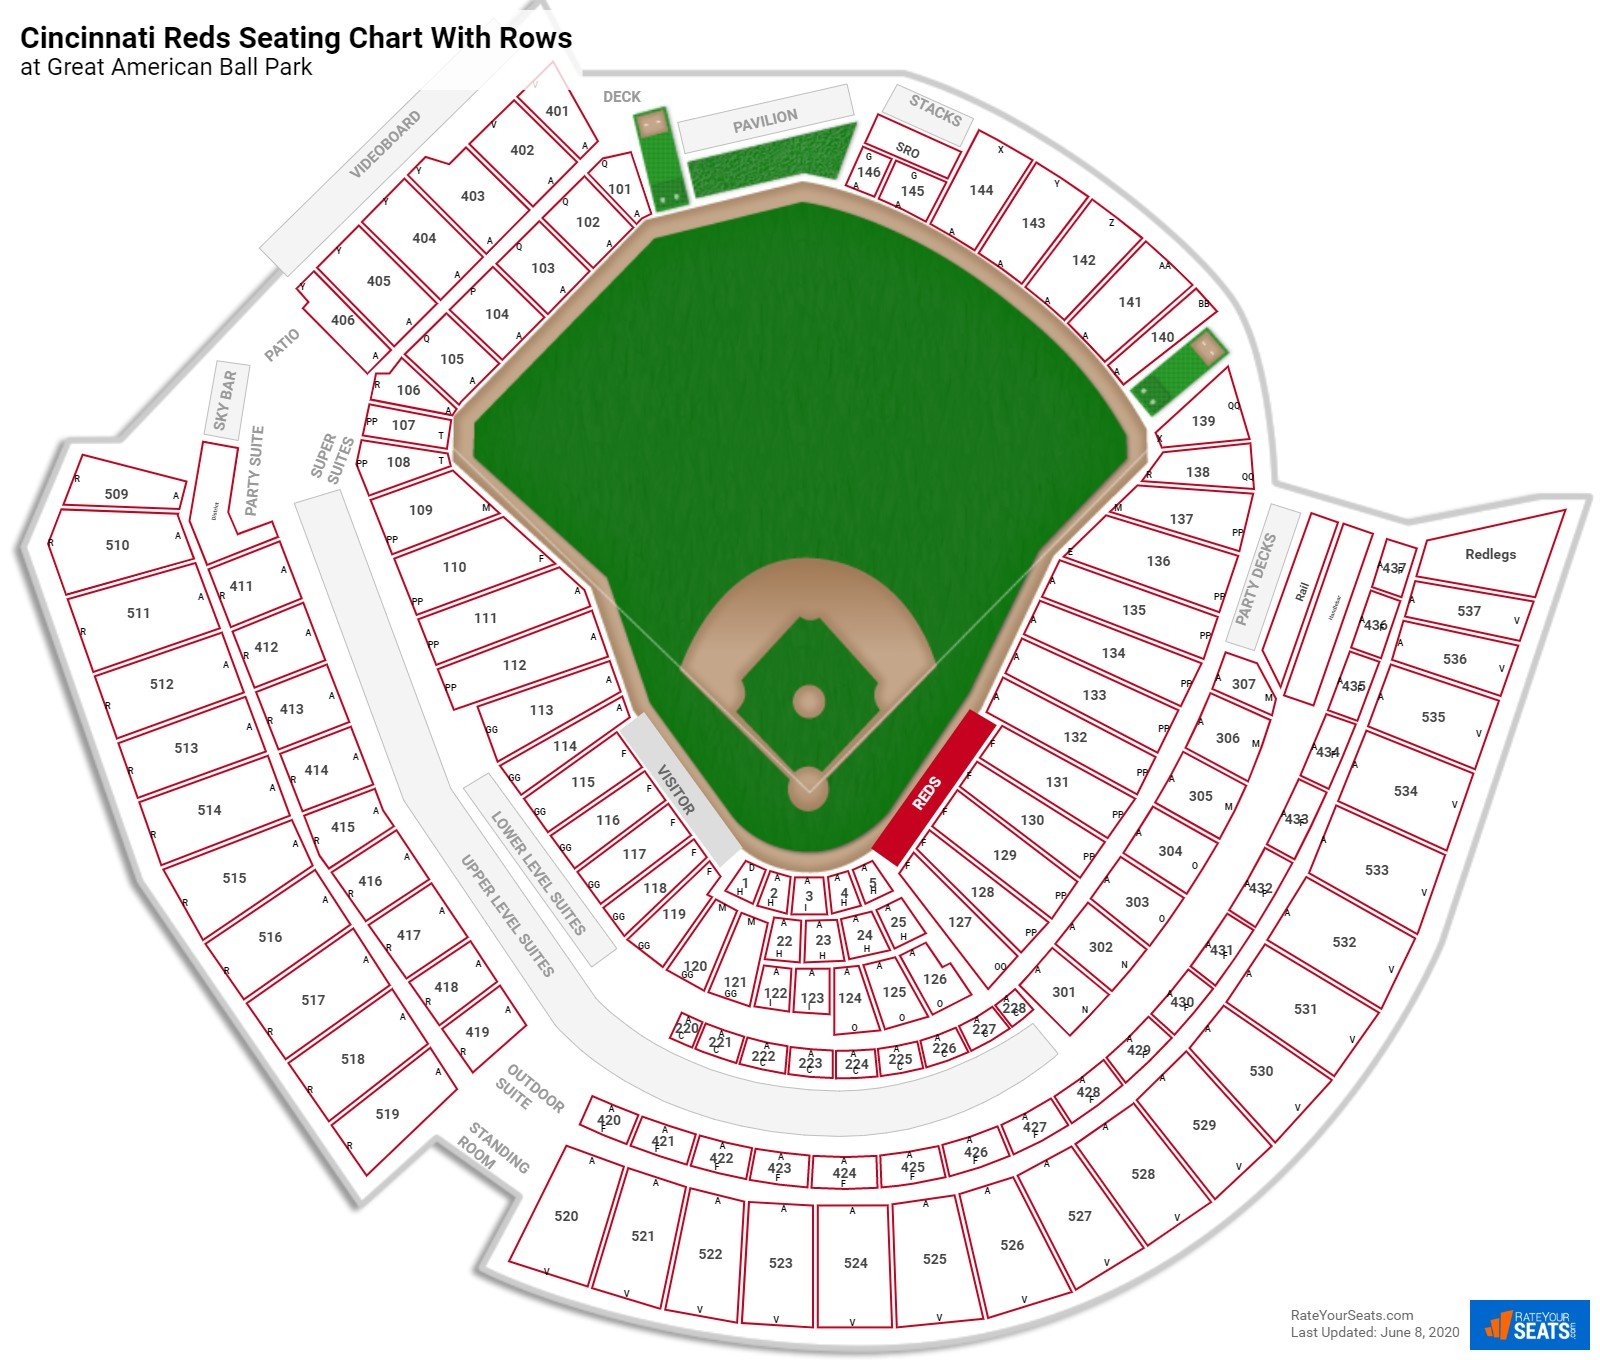 Great American Ball Park seating chart with rows baseball